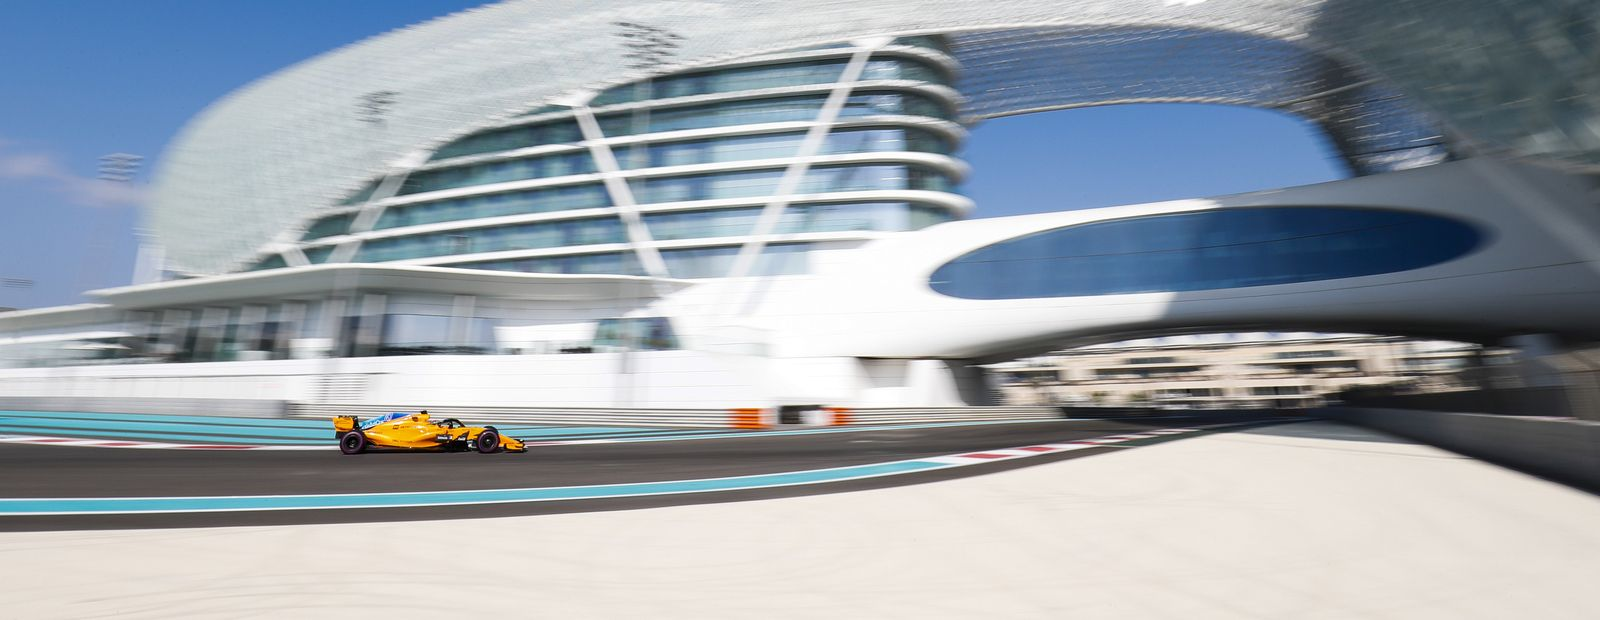 Abu Dhabi Tyre Test: Day 1